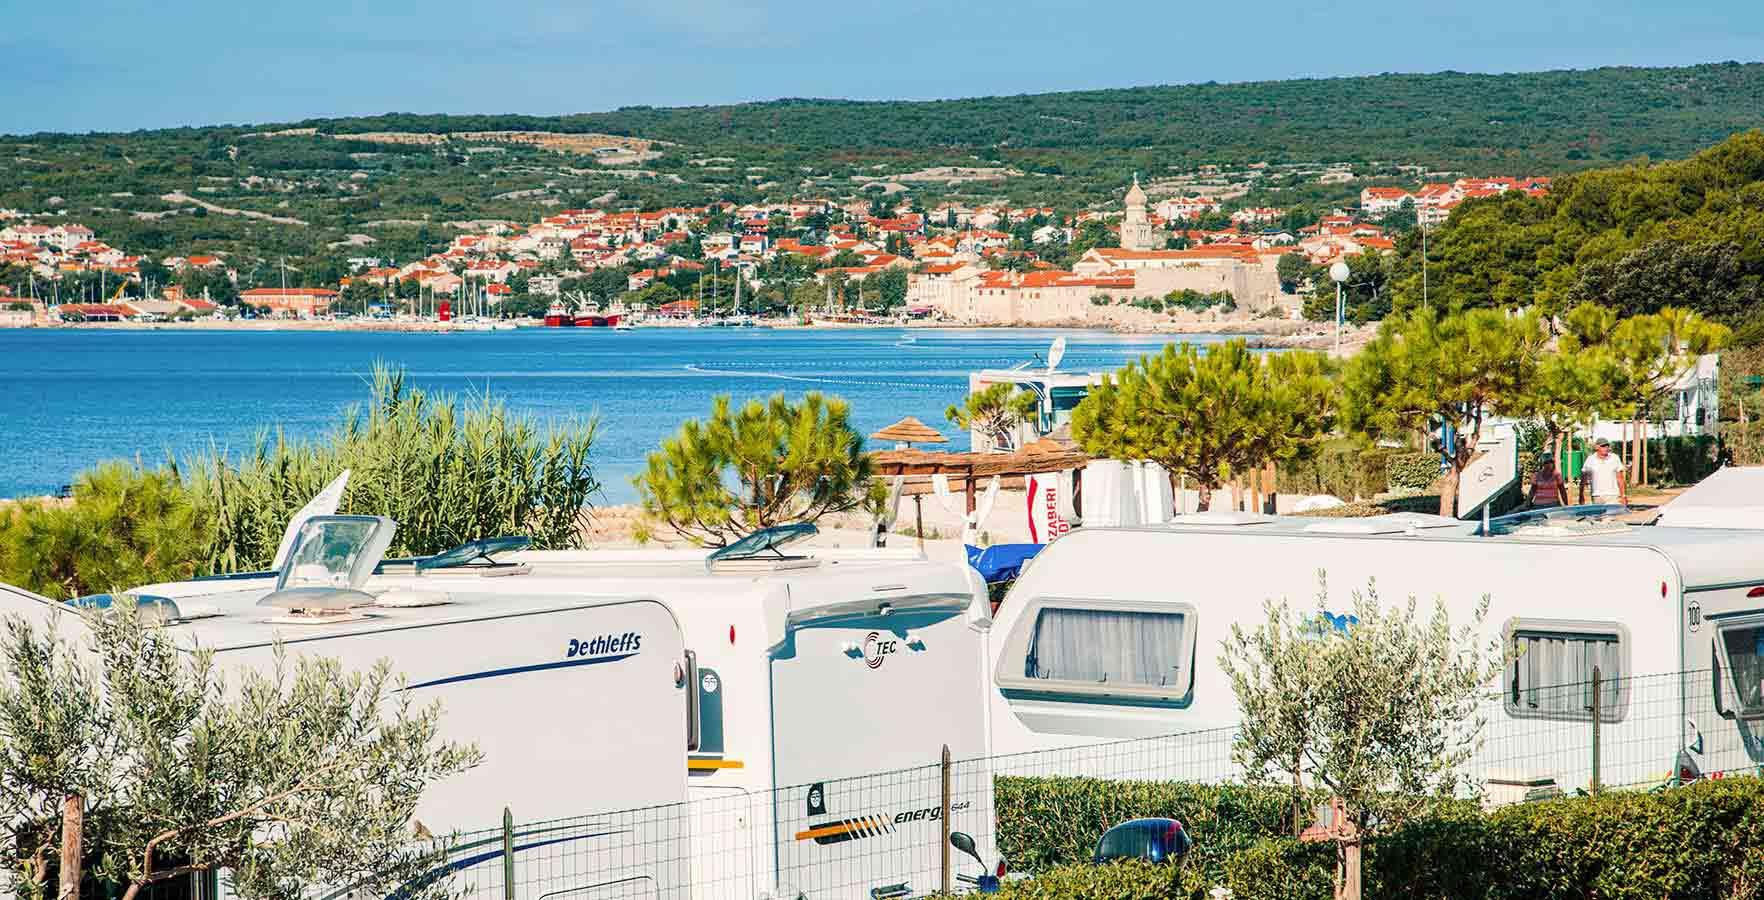 Campsite Krk - panoramic view